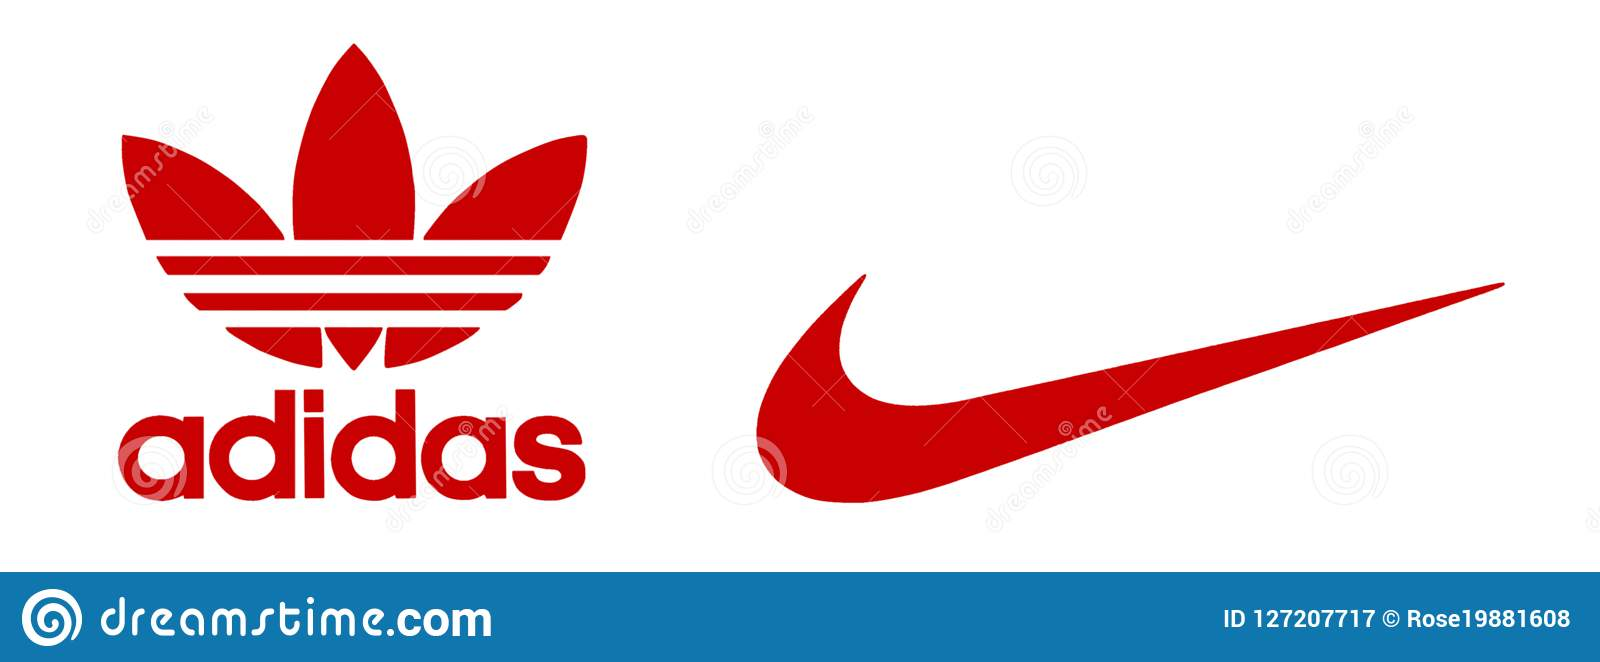 be7c723e78fe Adidas and Nike logos editorial photography. Illustration of adidas ...